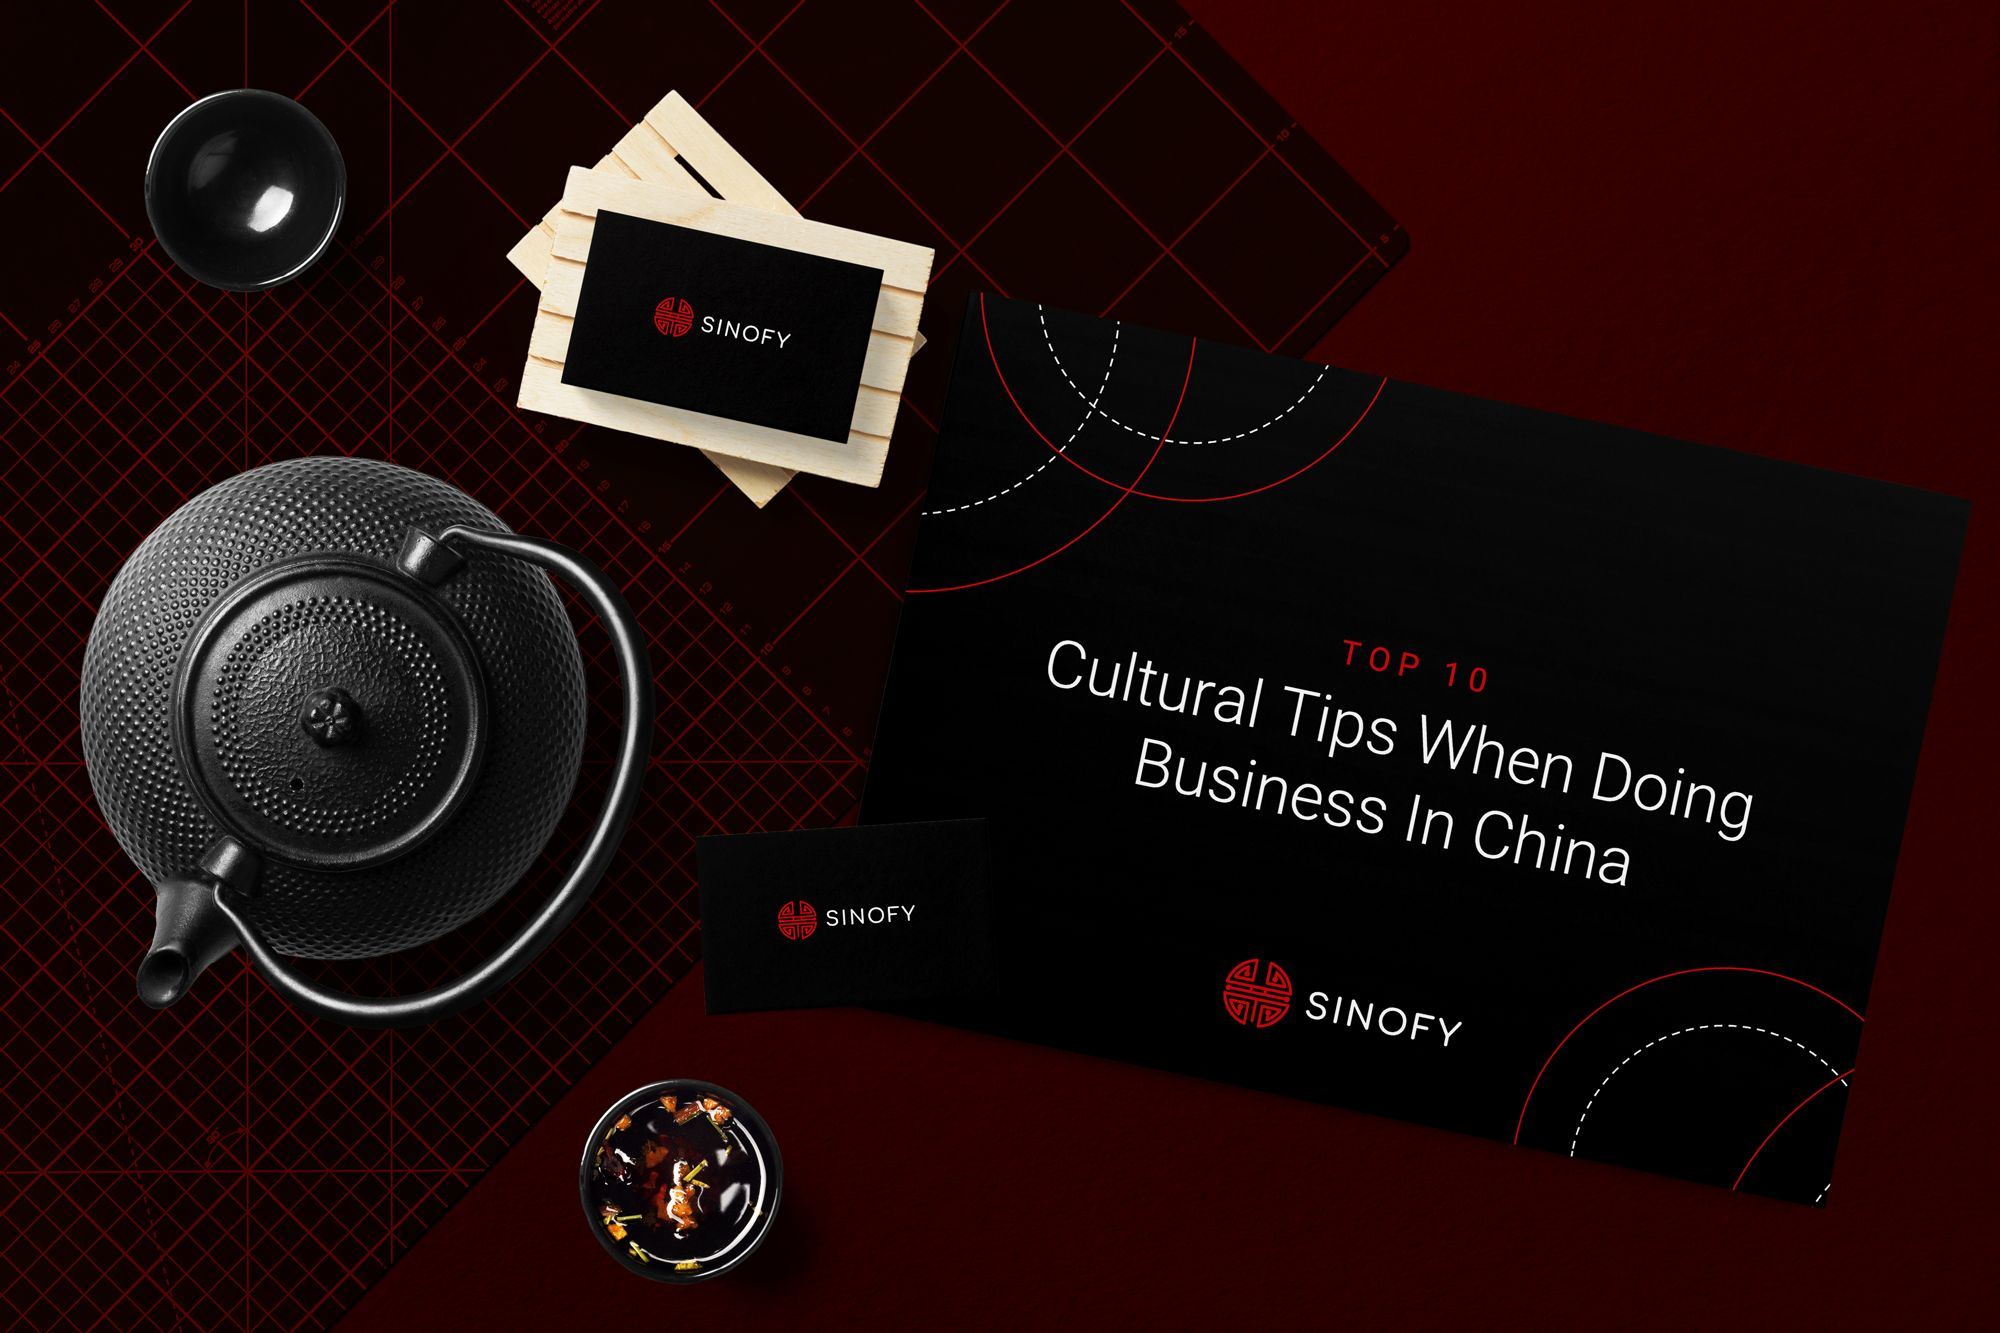 /top-10-cultural-tips-for-doing-business-in-china-for-entrepreneurs-and-investors-ev6w31rx feature image